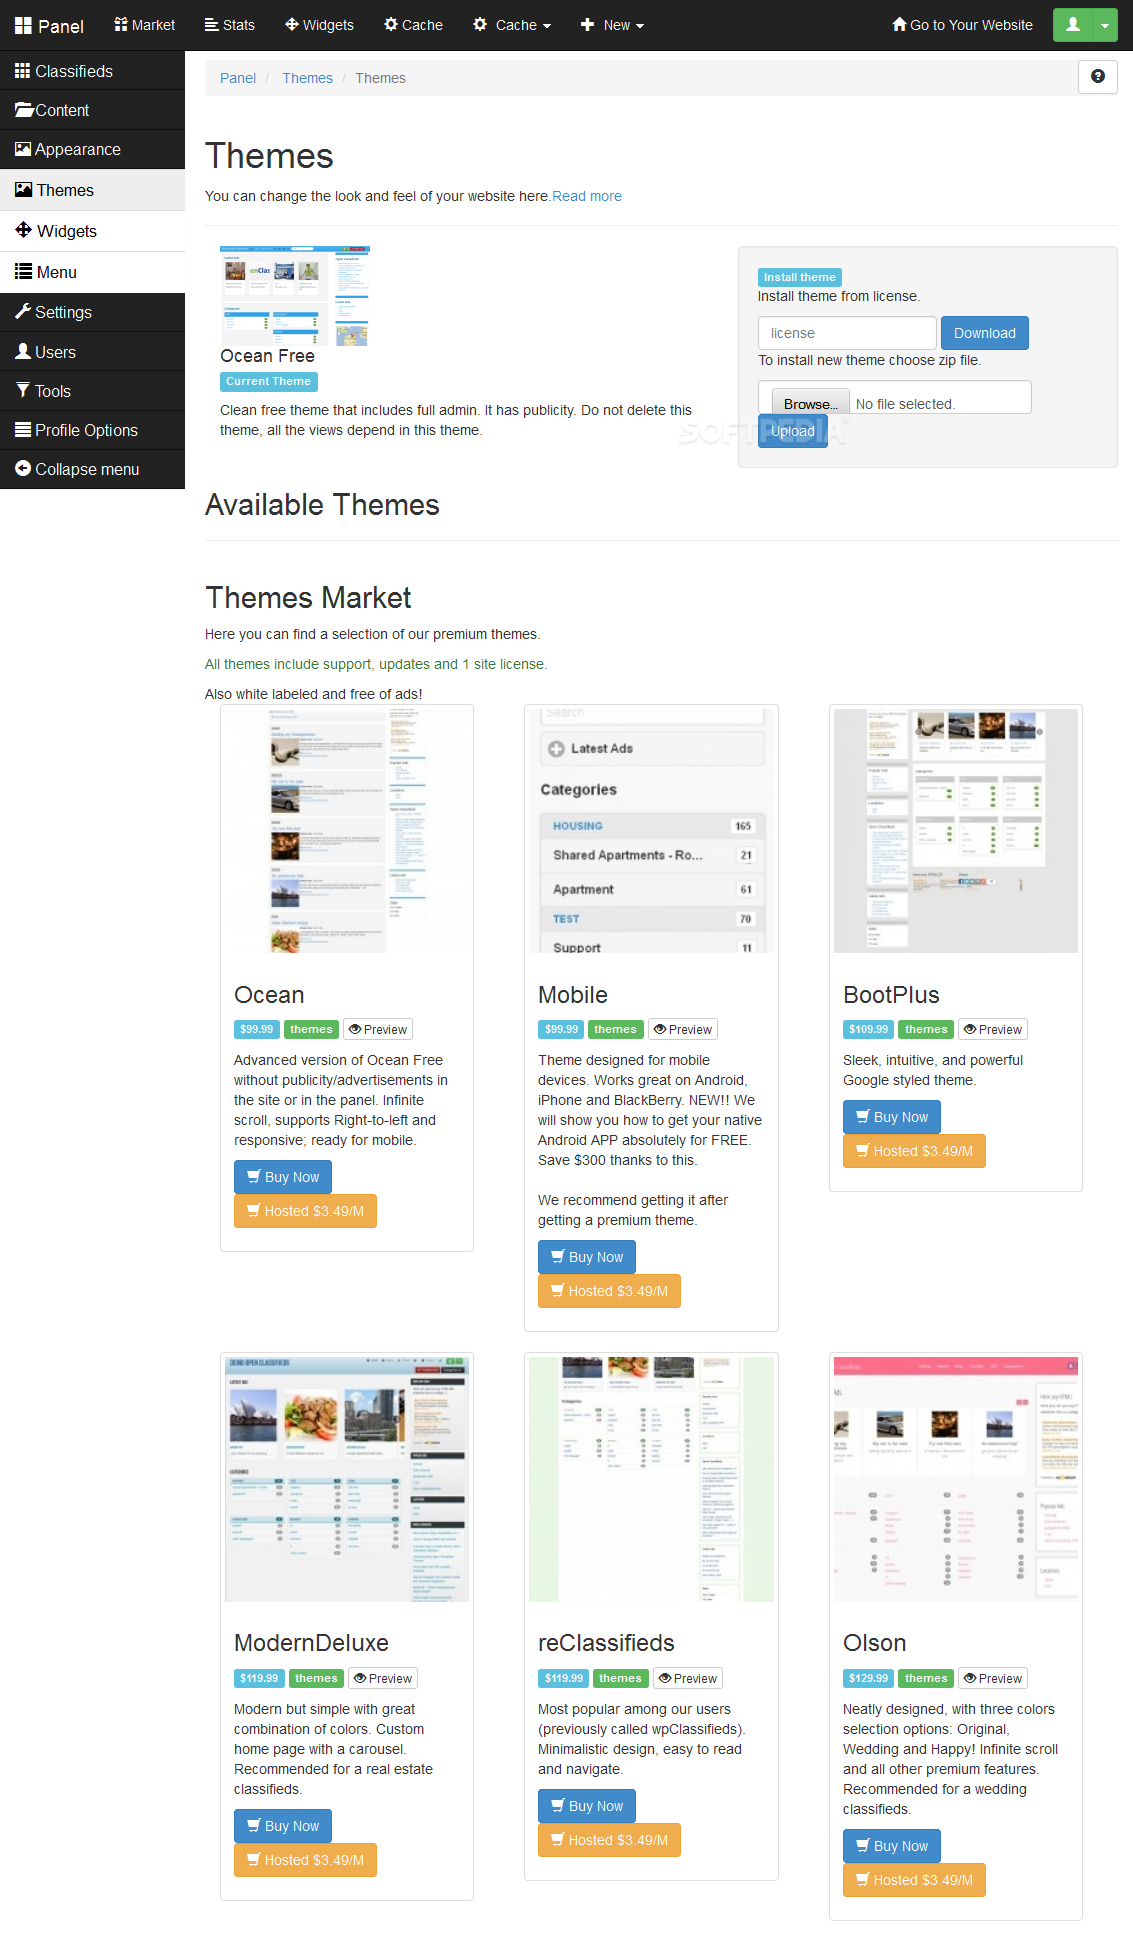 Open Classifieds - The Open Classifieds frontend can be customized via themes, widgets, and a menu manager